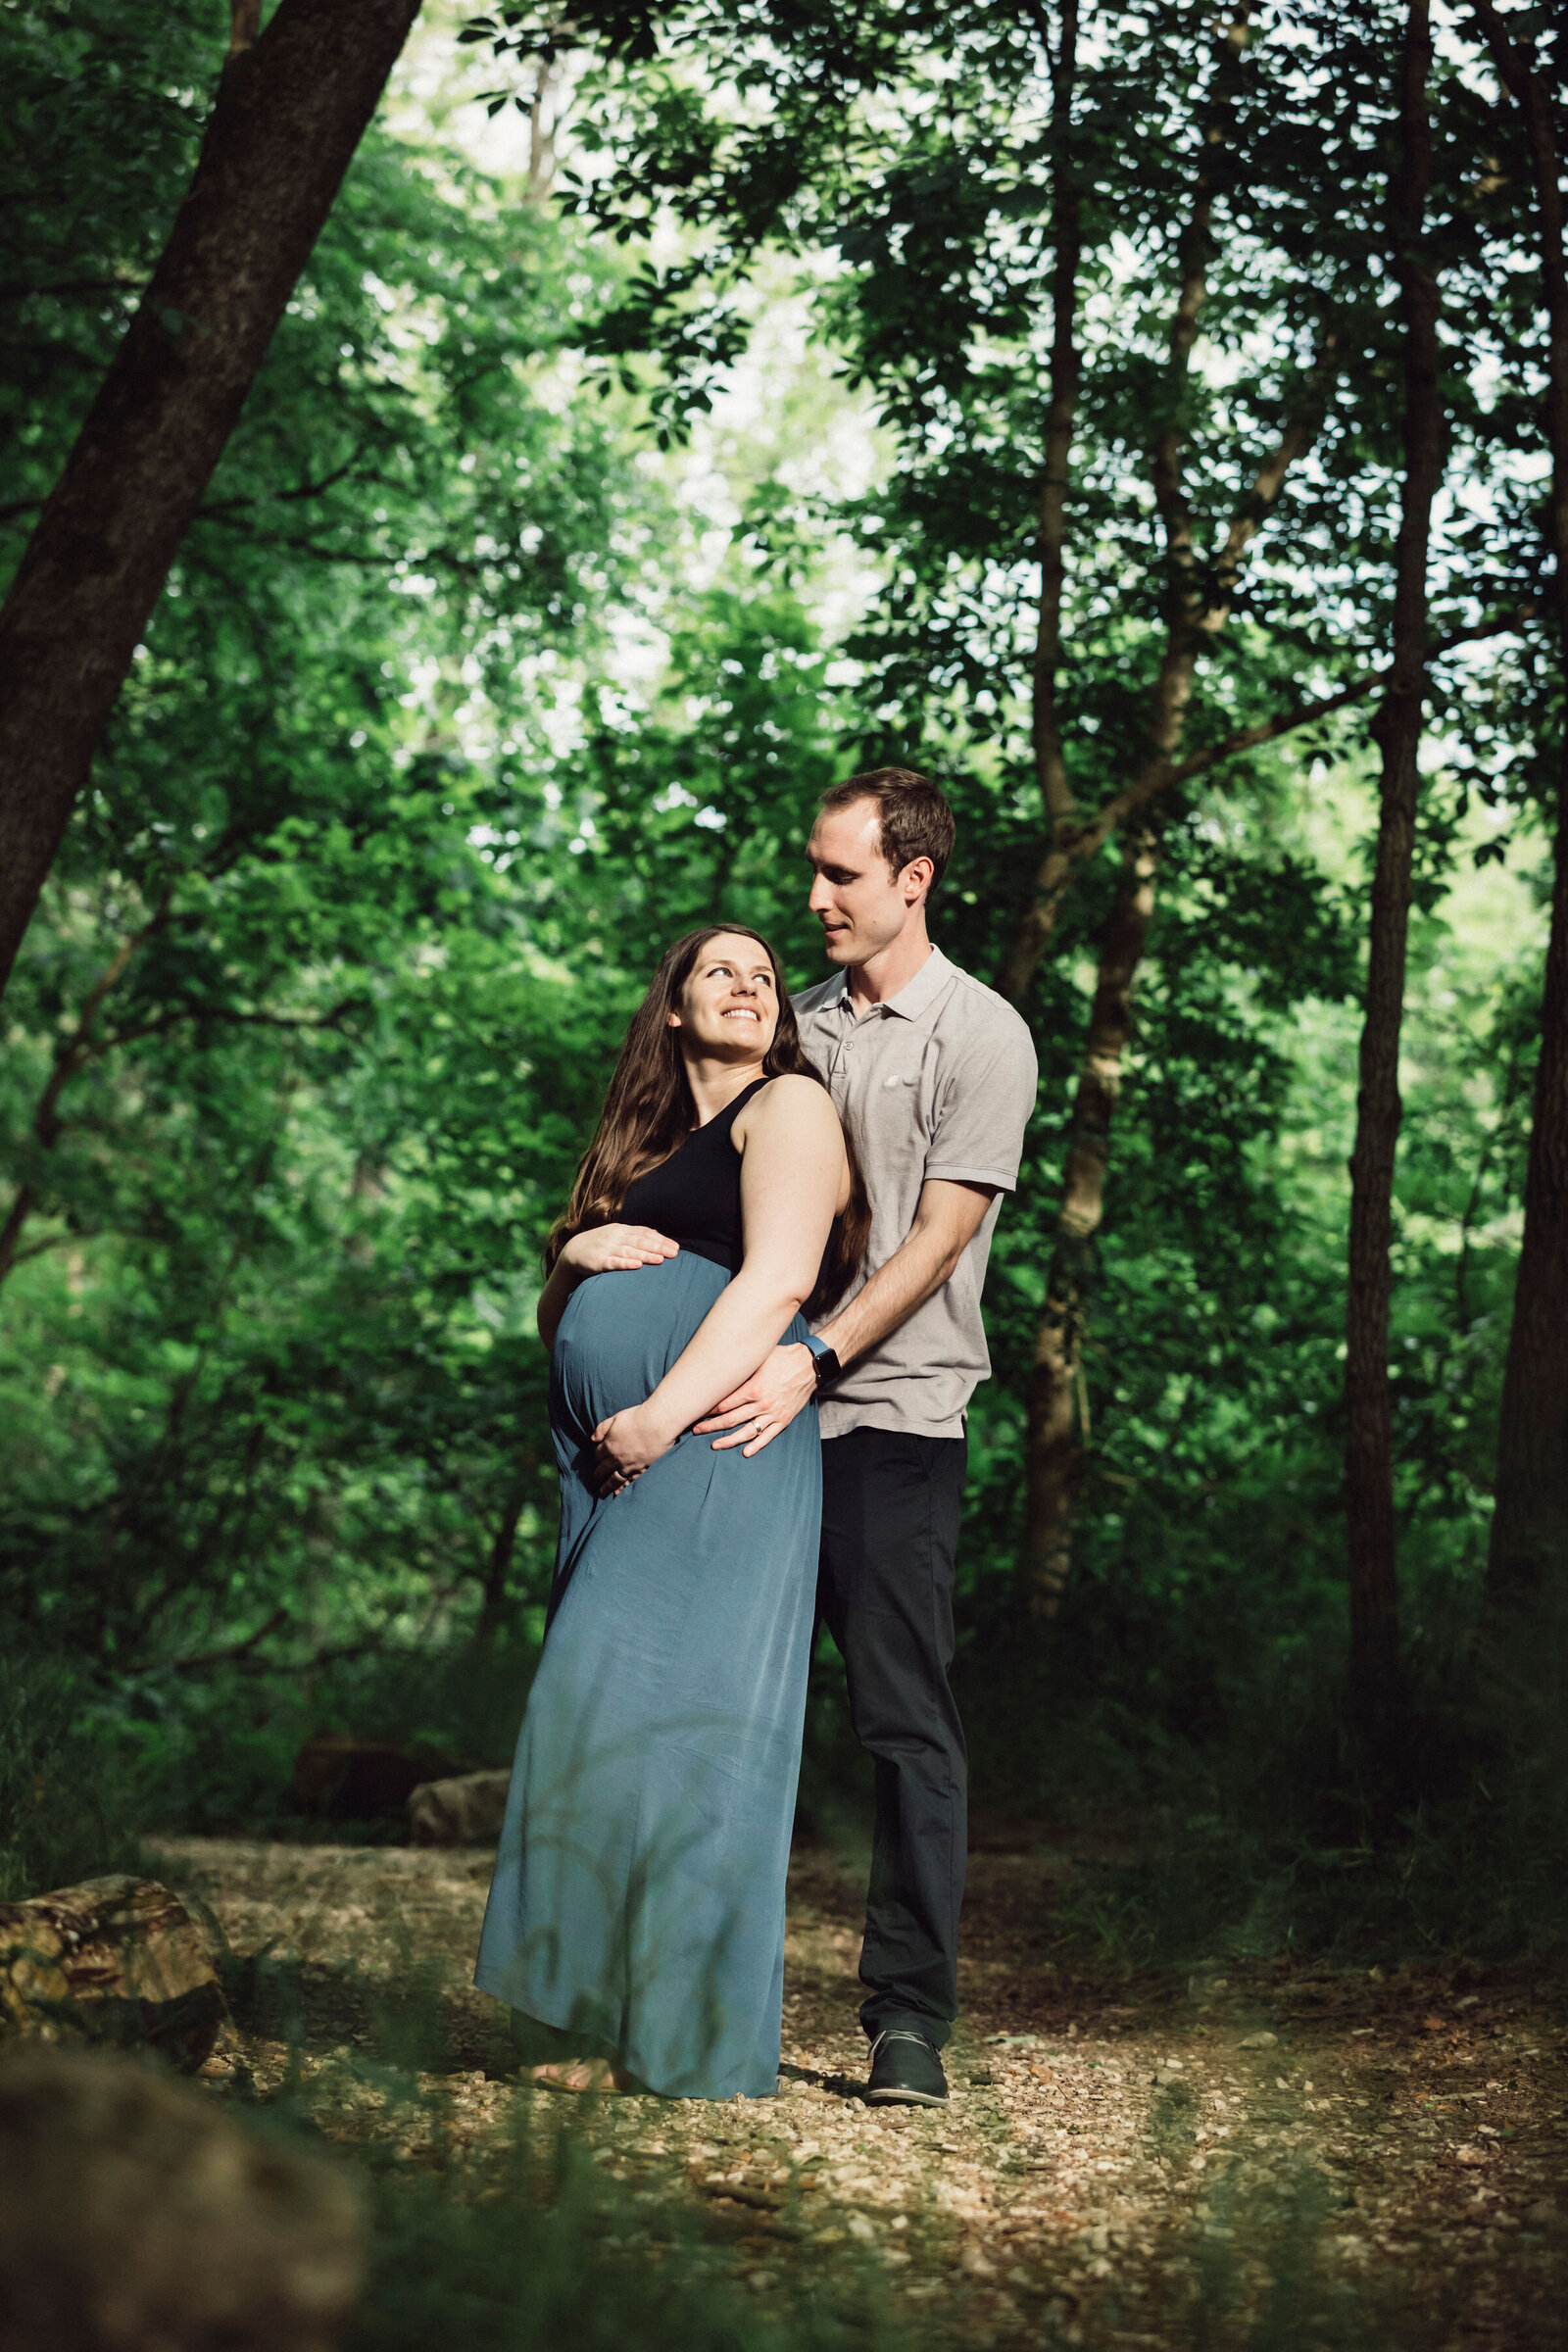 brunk_maternity_session_rkc_photo-85